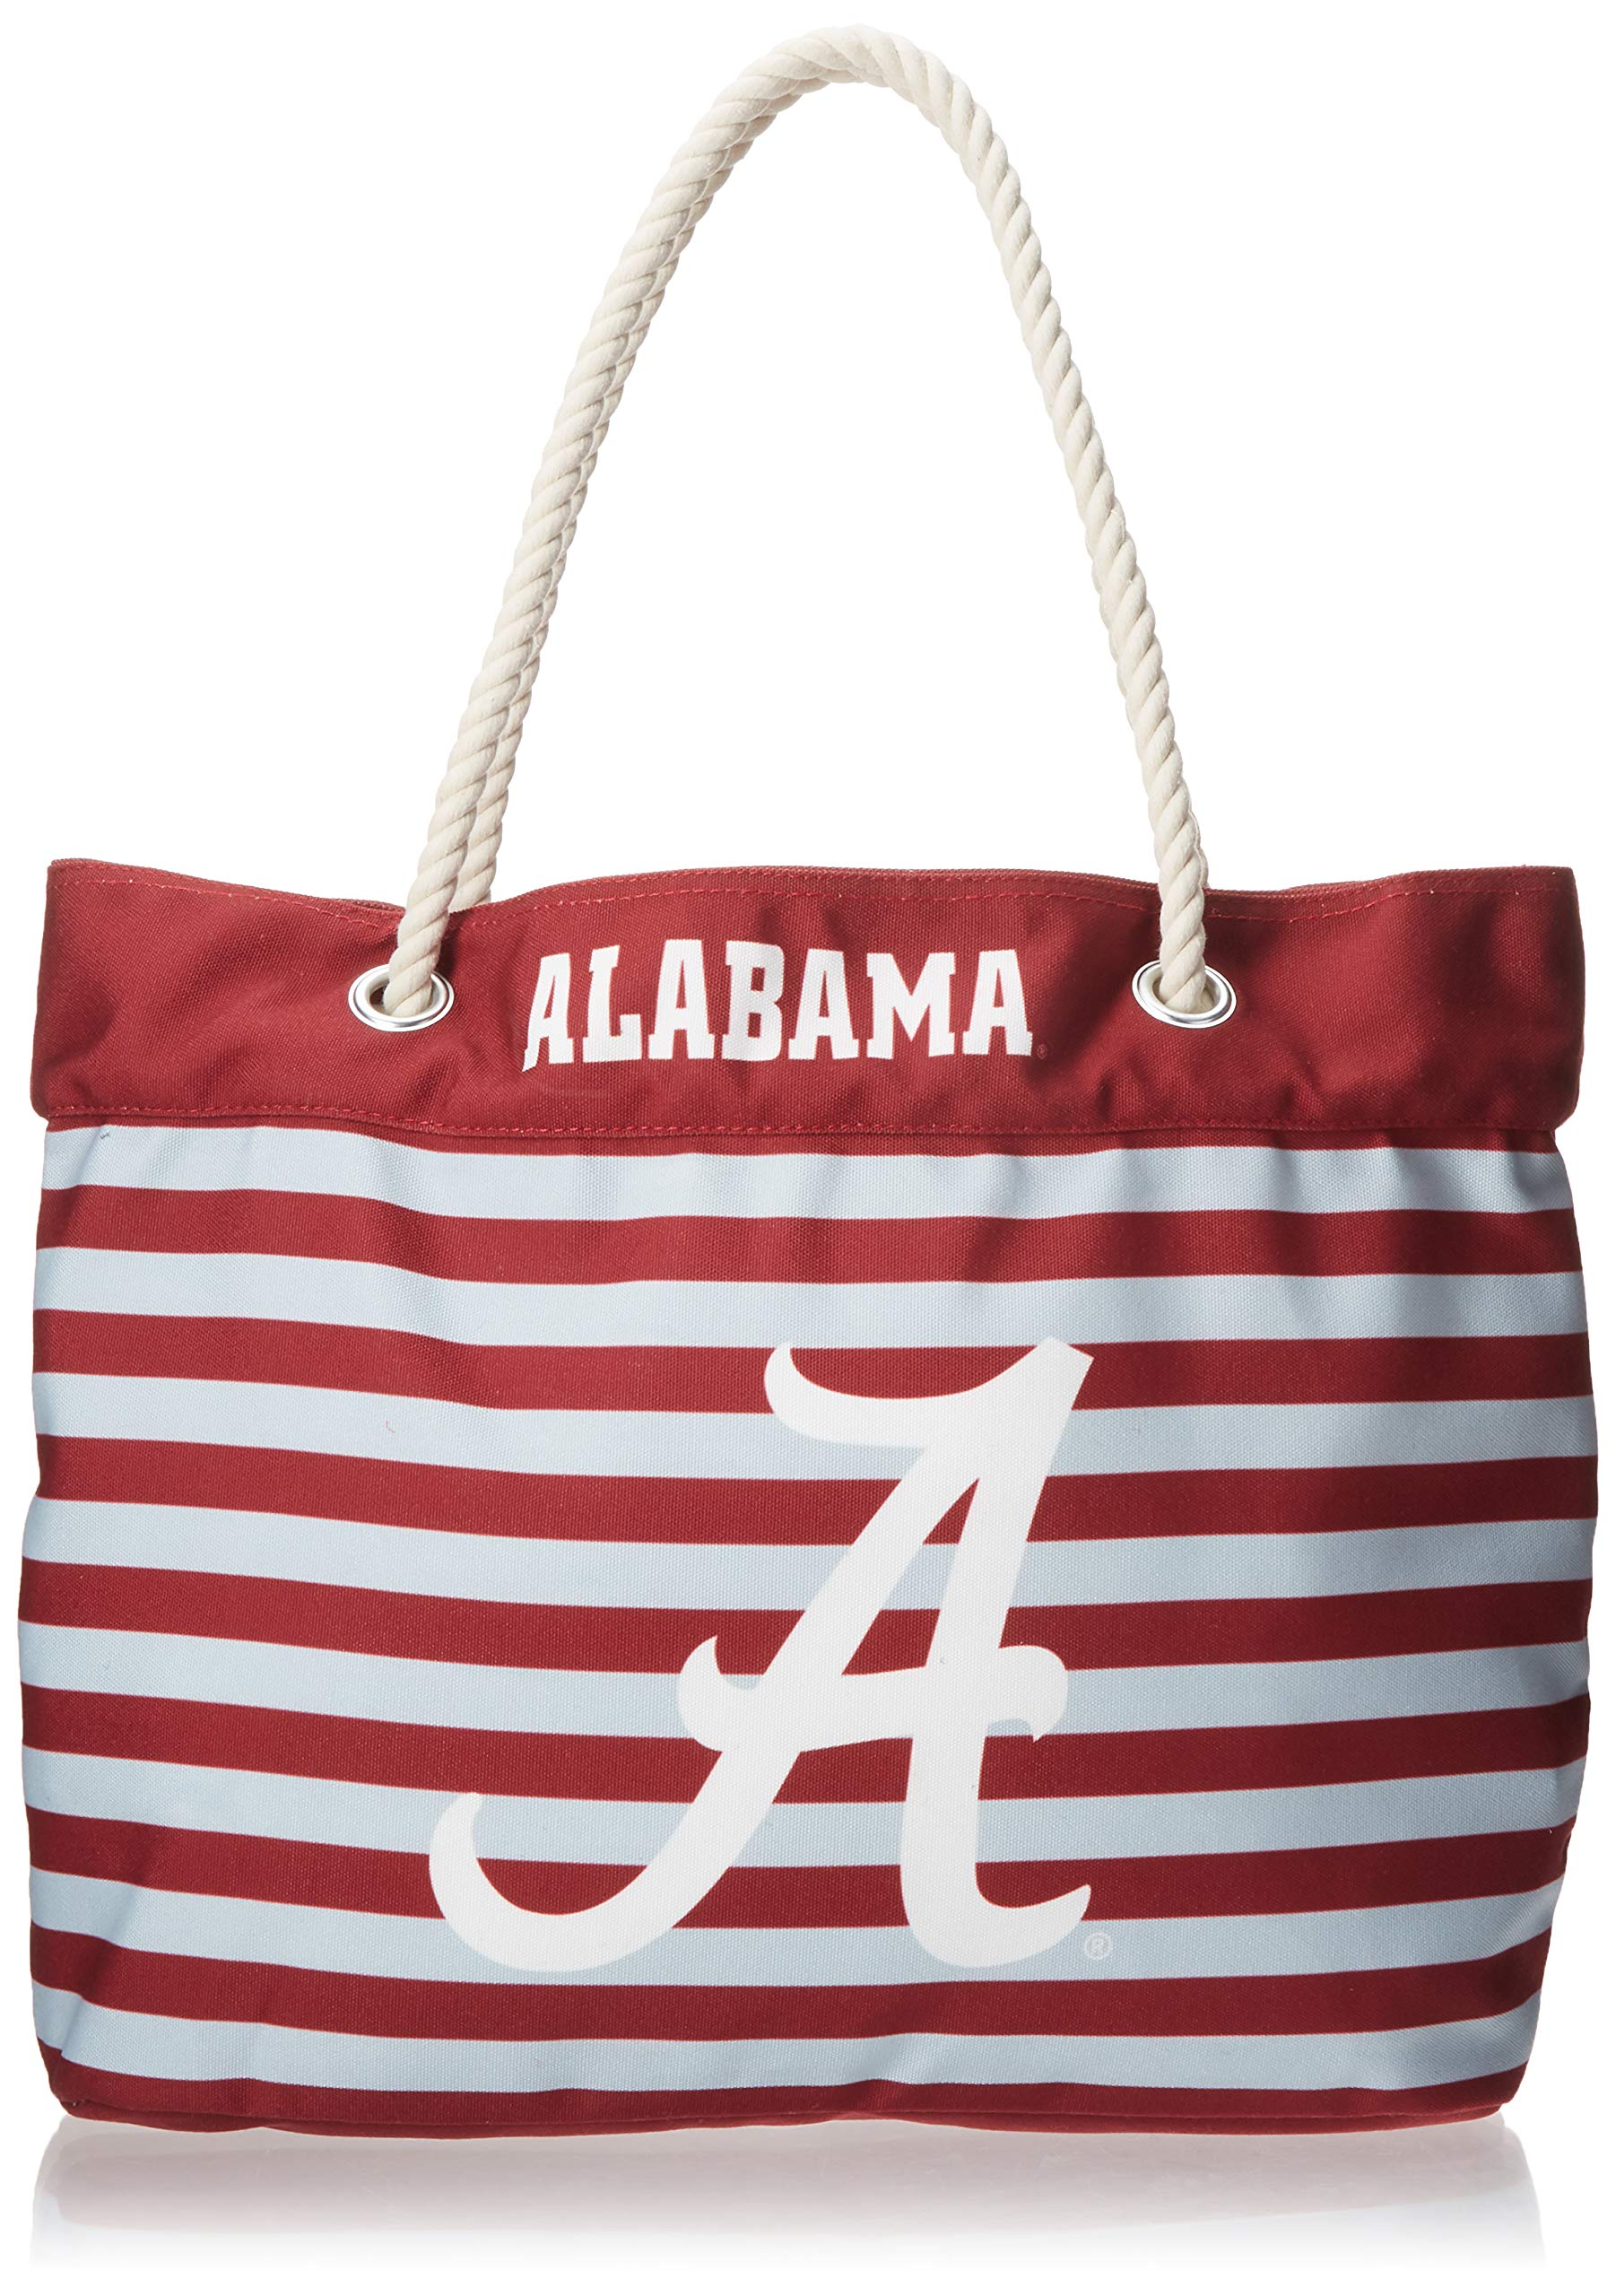 FOCO Alabama Nautical Stripe Tote Bag